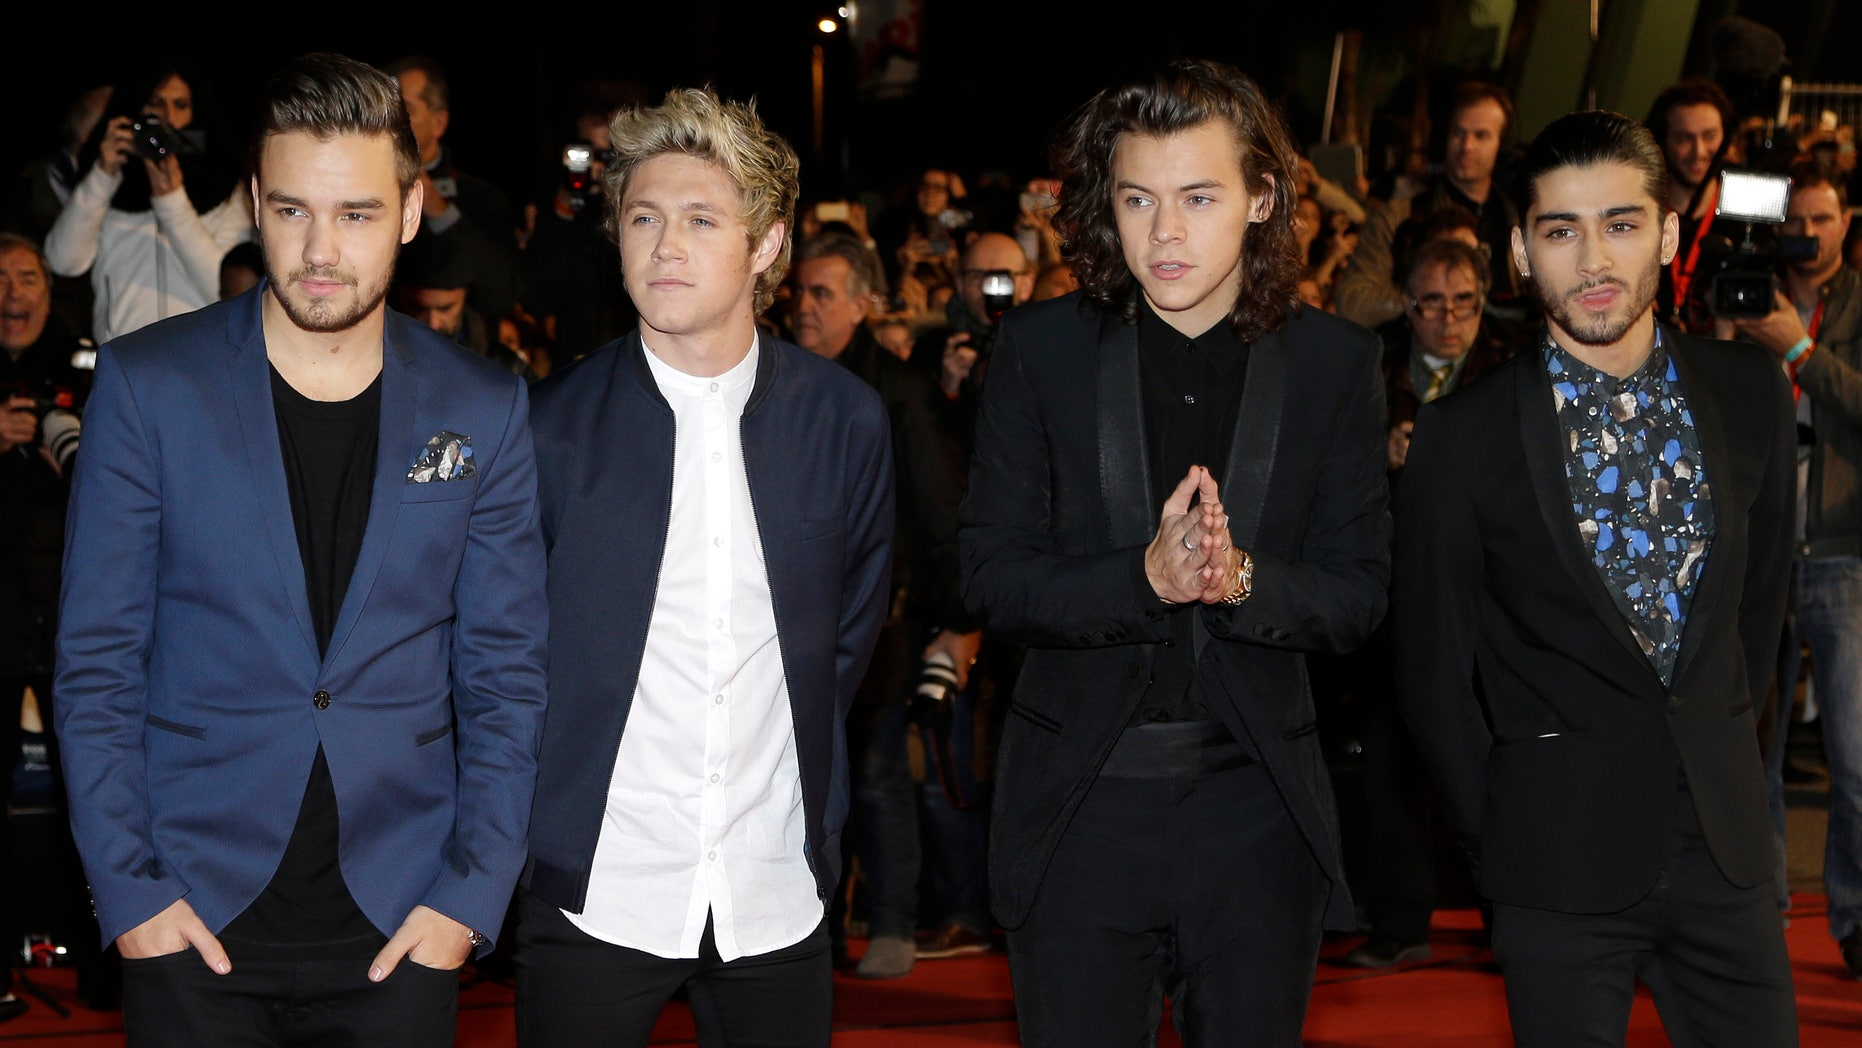 FILE - In this Dec. 13, 2014, photo, English Irish pop boy band One Direction arrives at the Cannes festival palace, to take part in the NRJ Music awards ceremony, in Cannes, southeastern France. The Philippine Bureau of Immigration is requiring two members of the English-Irish band One Direction to post bonds worth nearly $5,000 each, to be forfeited if they are caught using or impliedly promoting illegal drugs while in Manila for their concerts during the weekend of March 21-22, 2015.  (AP Photo/Lionel Cironneau, File)